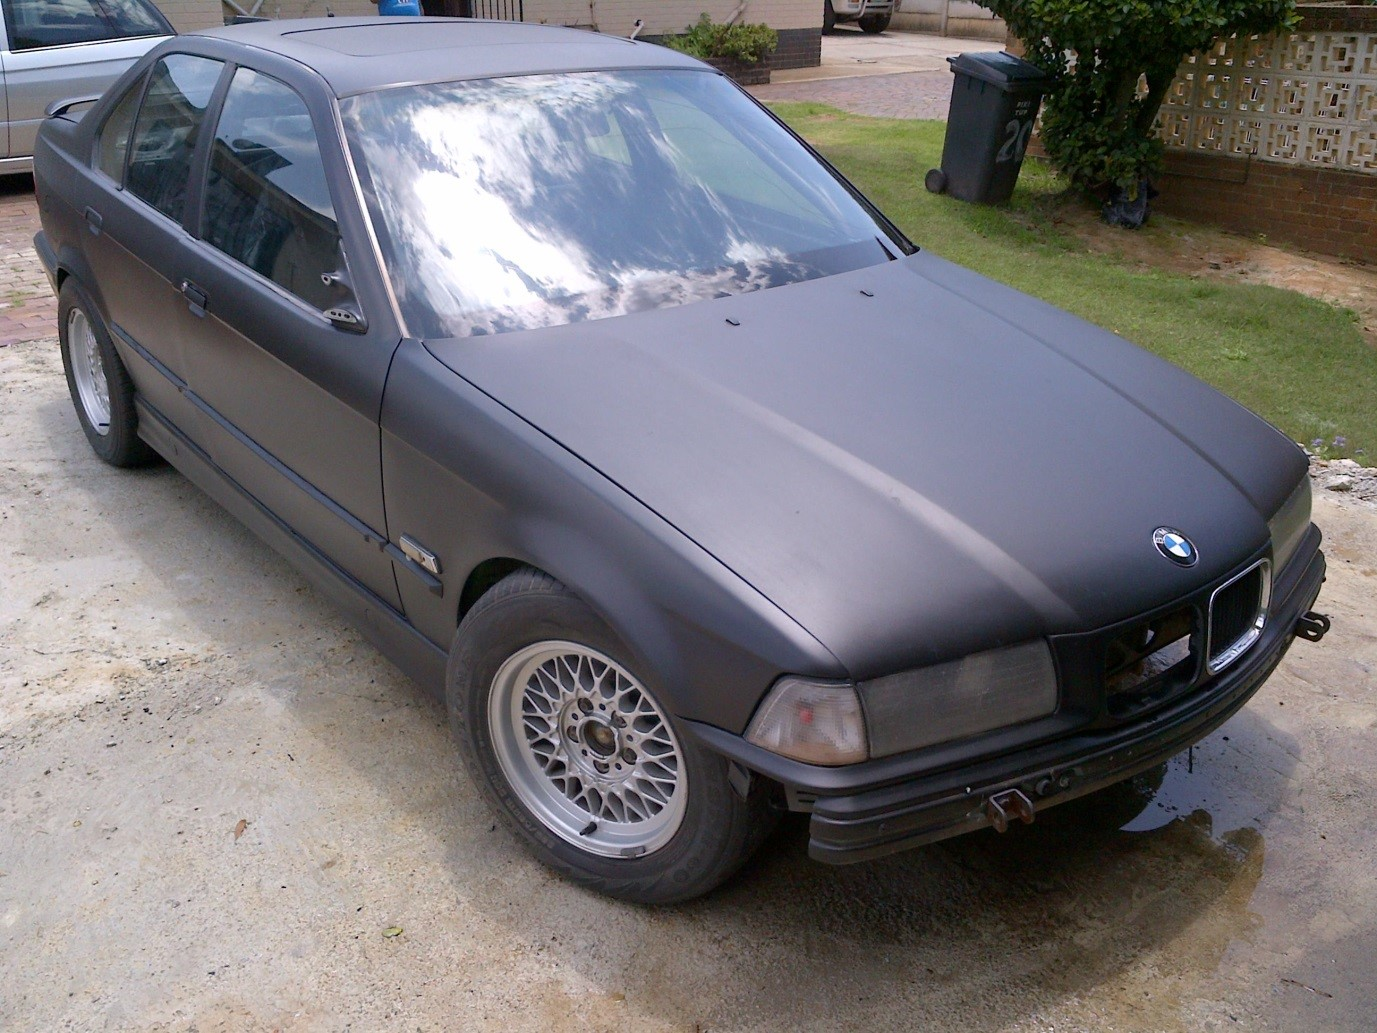 bmw e36 328i project racing car up for sale. Black Bedroom Furniture Sets. Home Design Ideas